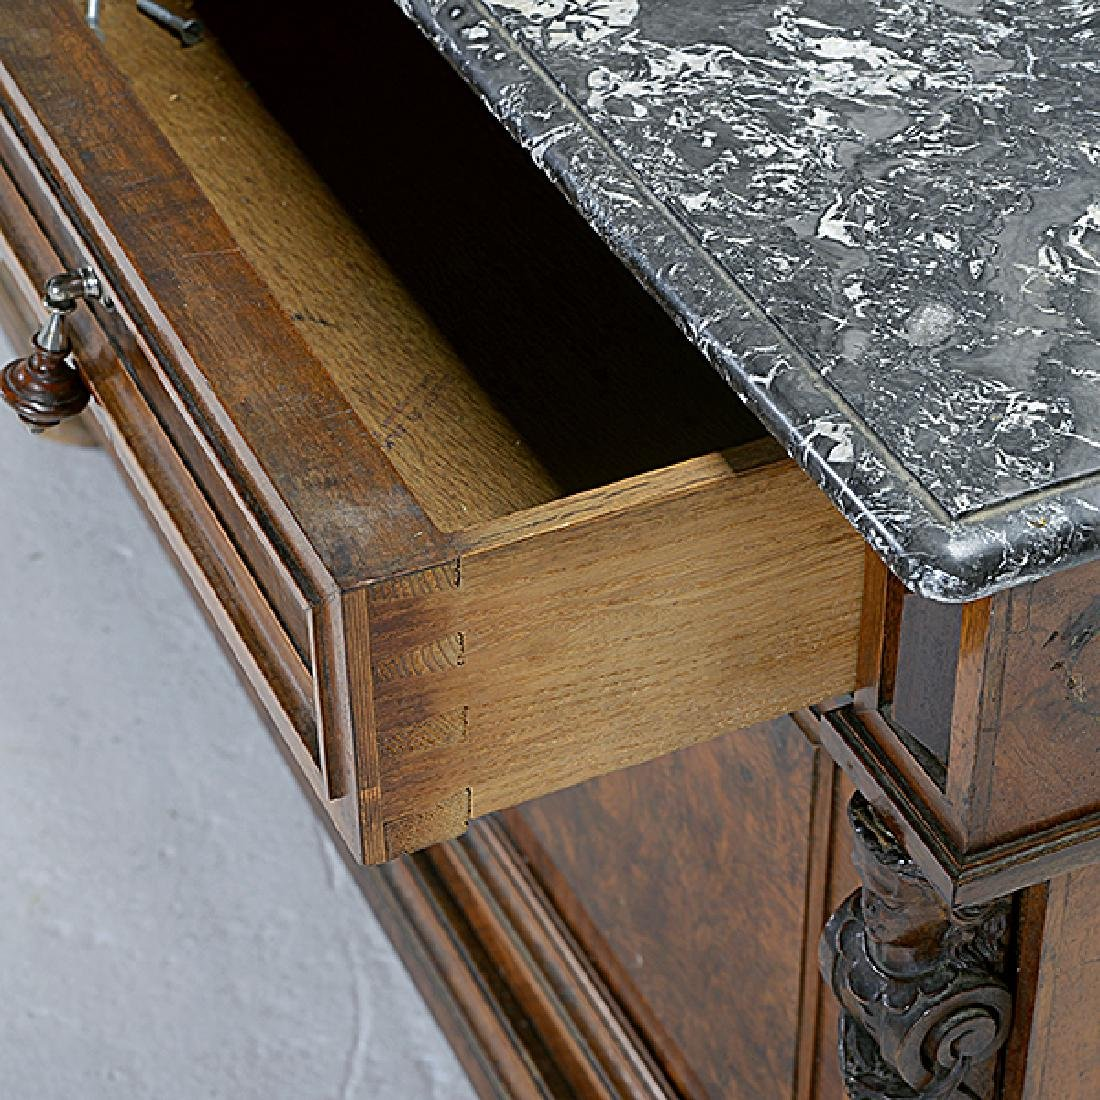 Pair of Rococo Revival Bedside Tables with Commode - 8